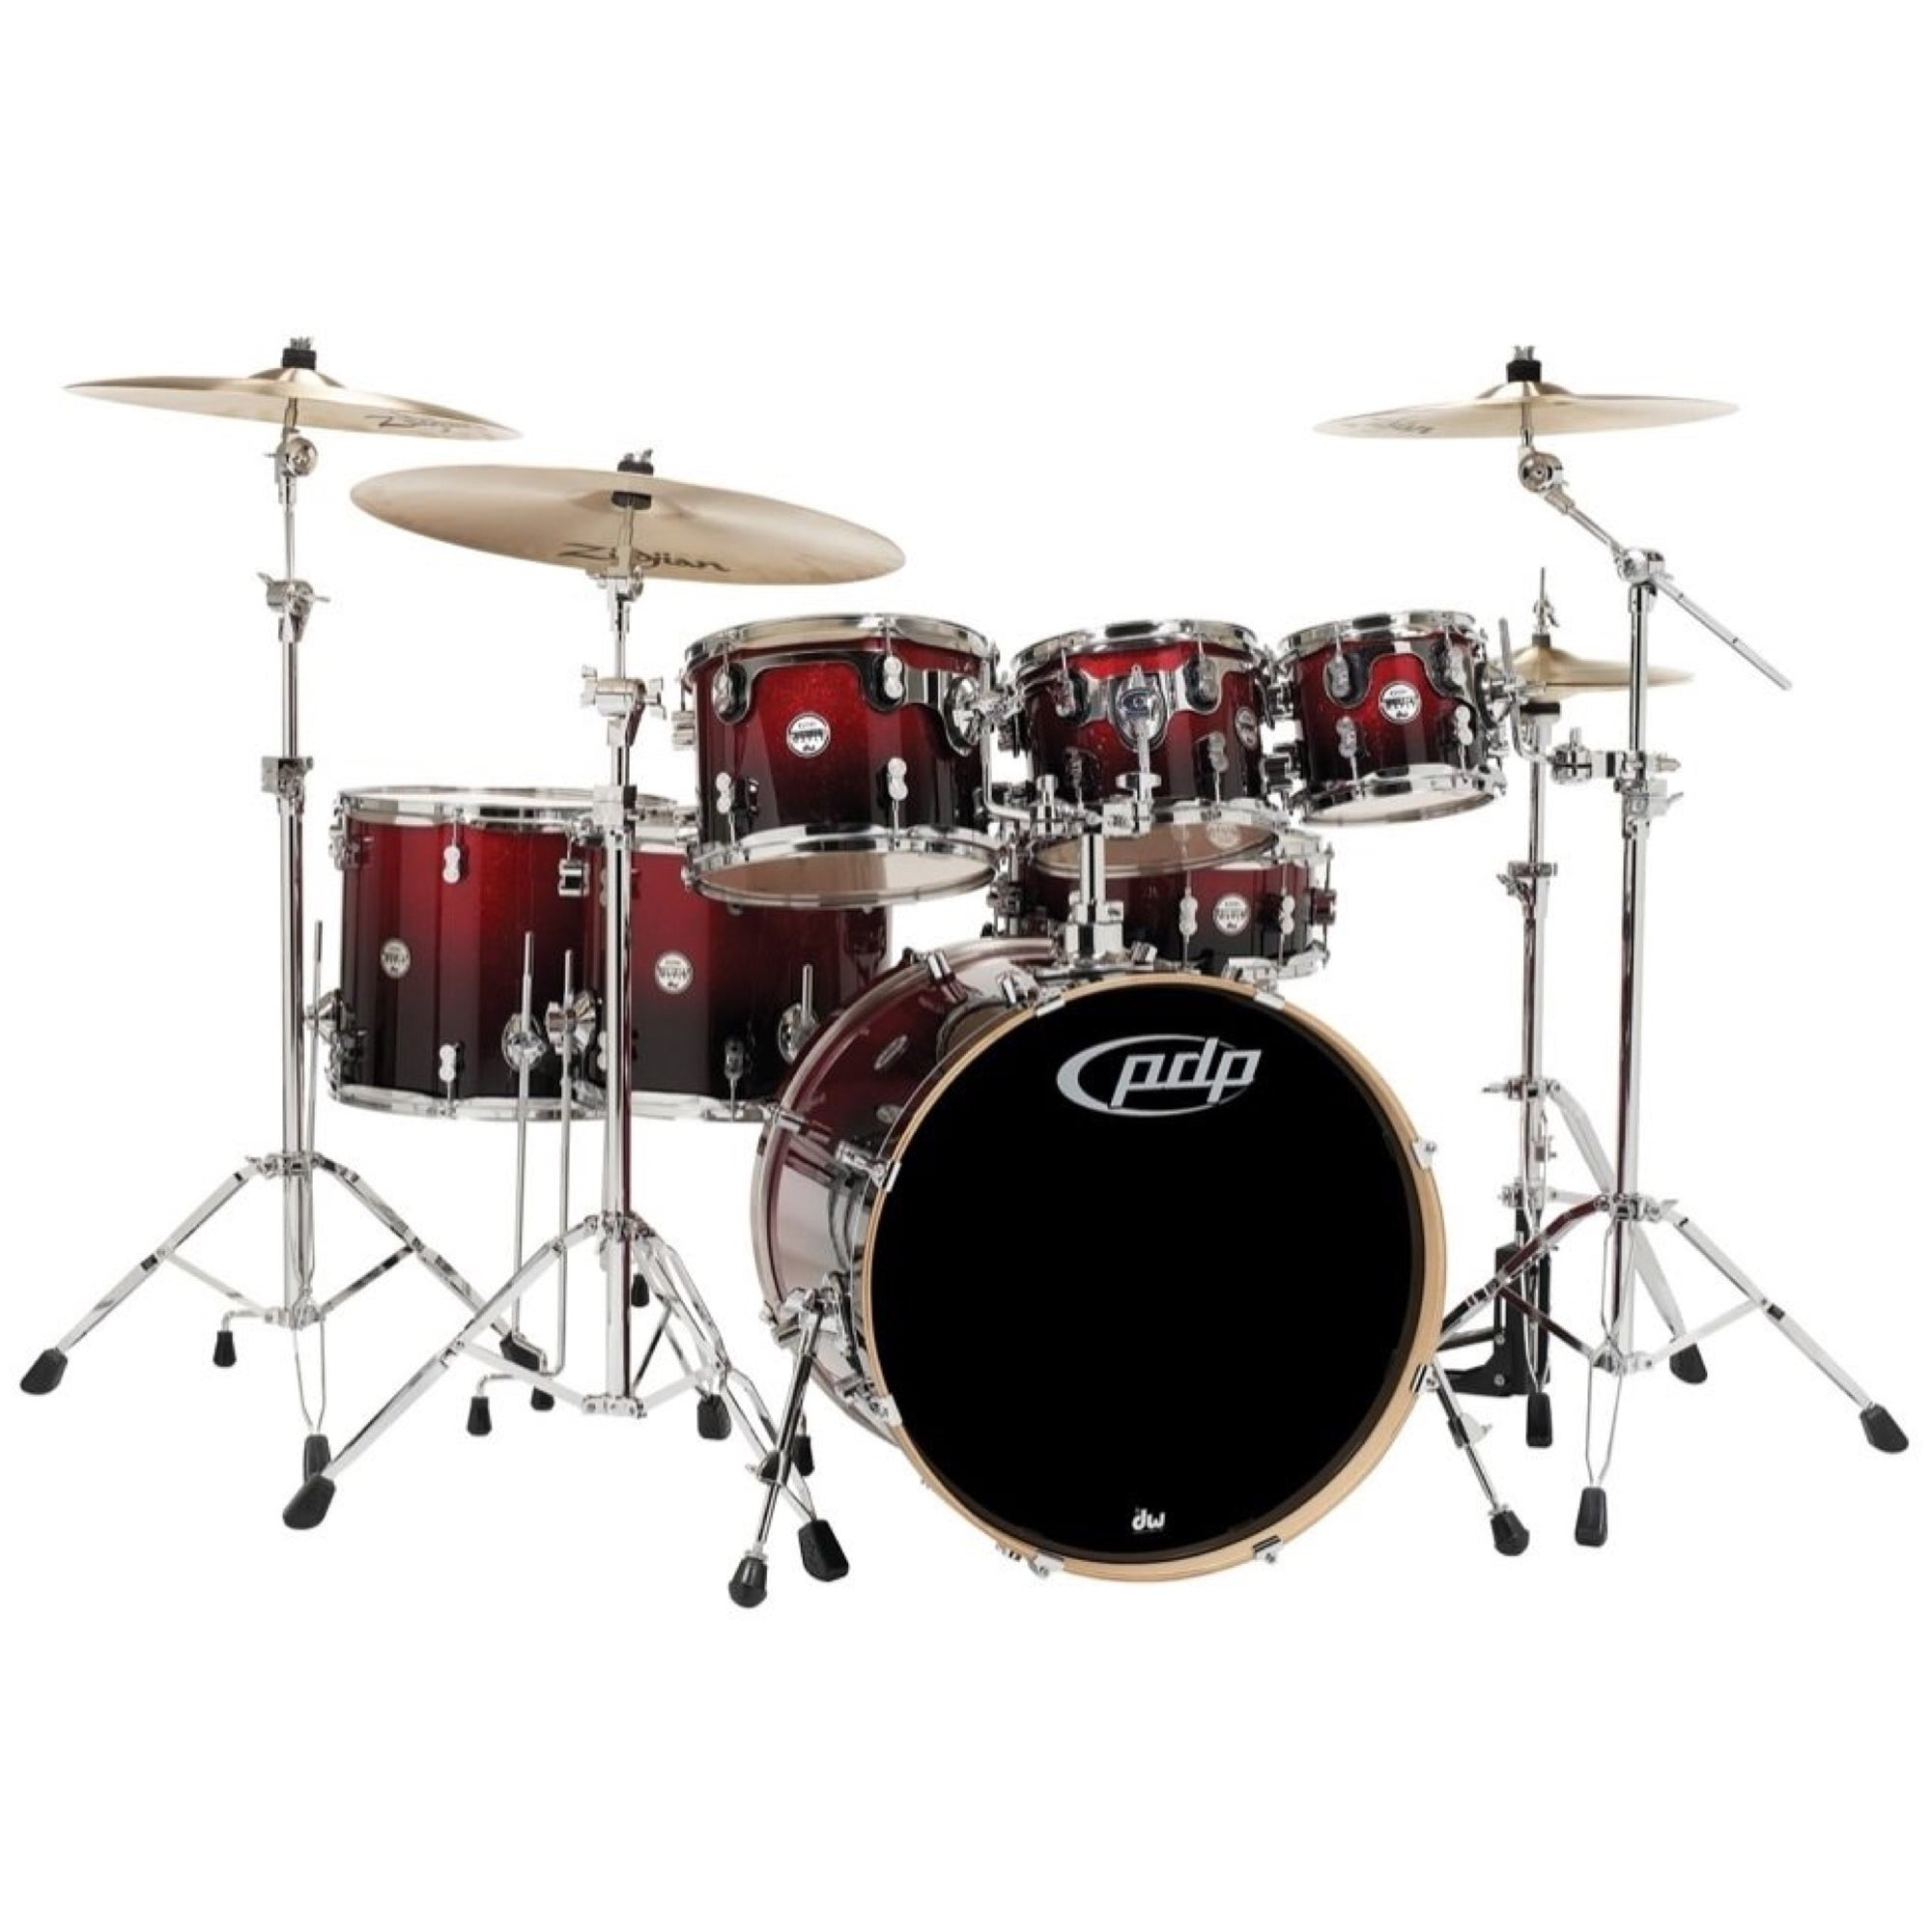 Pacific Drums Concept Maple Drum Shell Kit, 7-Piece, Cherry to Black Sparkle Fade, with Pacific Drum 800 Series Hardware